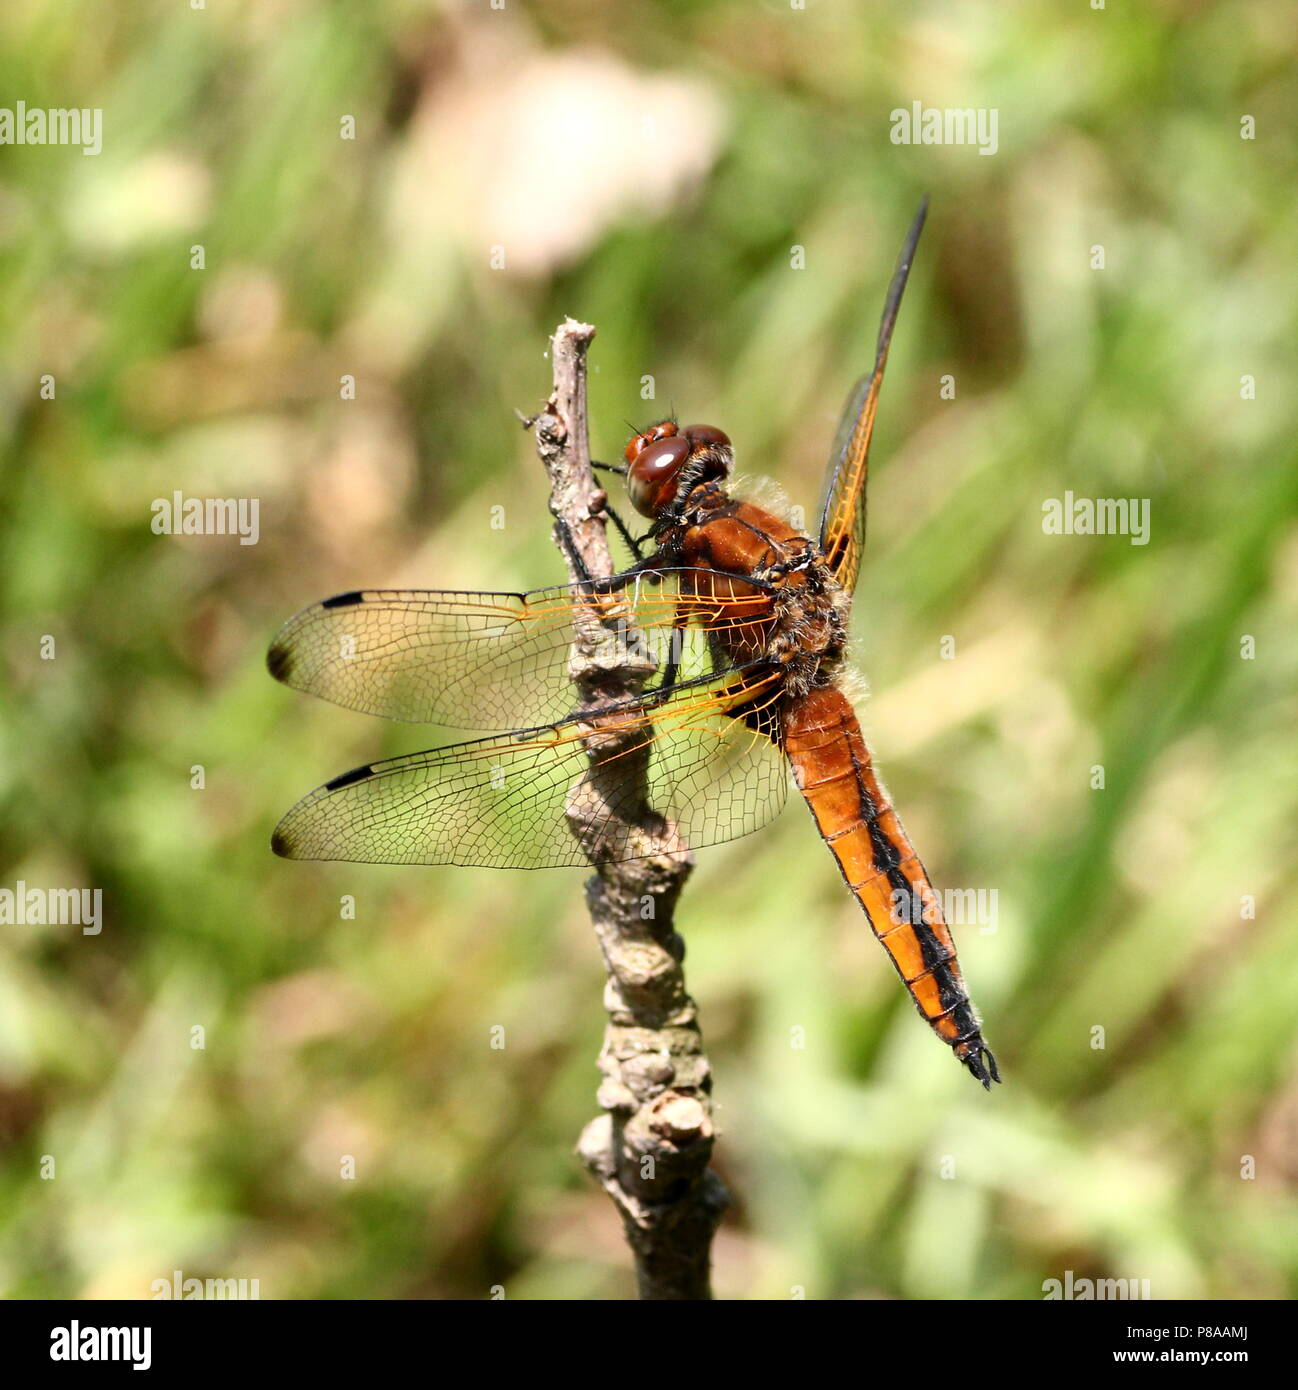 European Scarce chaser dragonfly (Libellula Fulva) in closeup Stock Photo